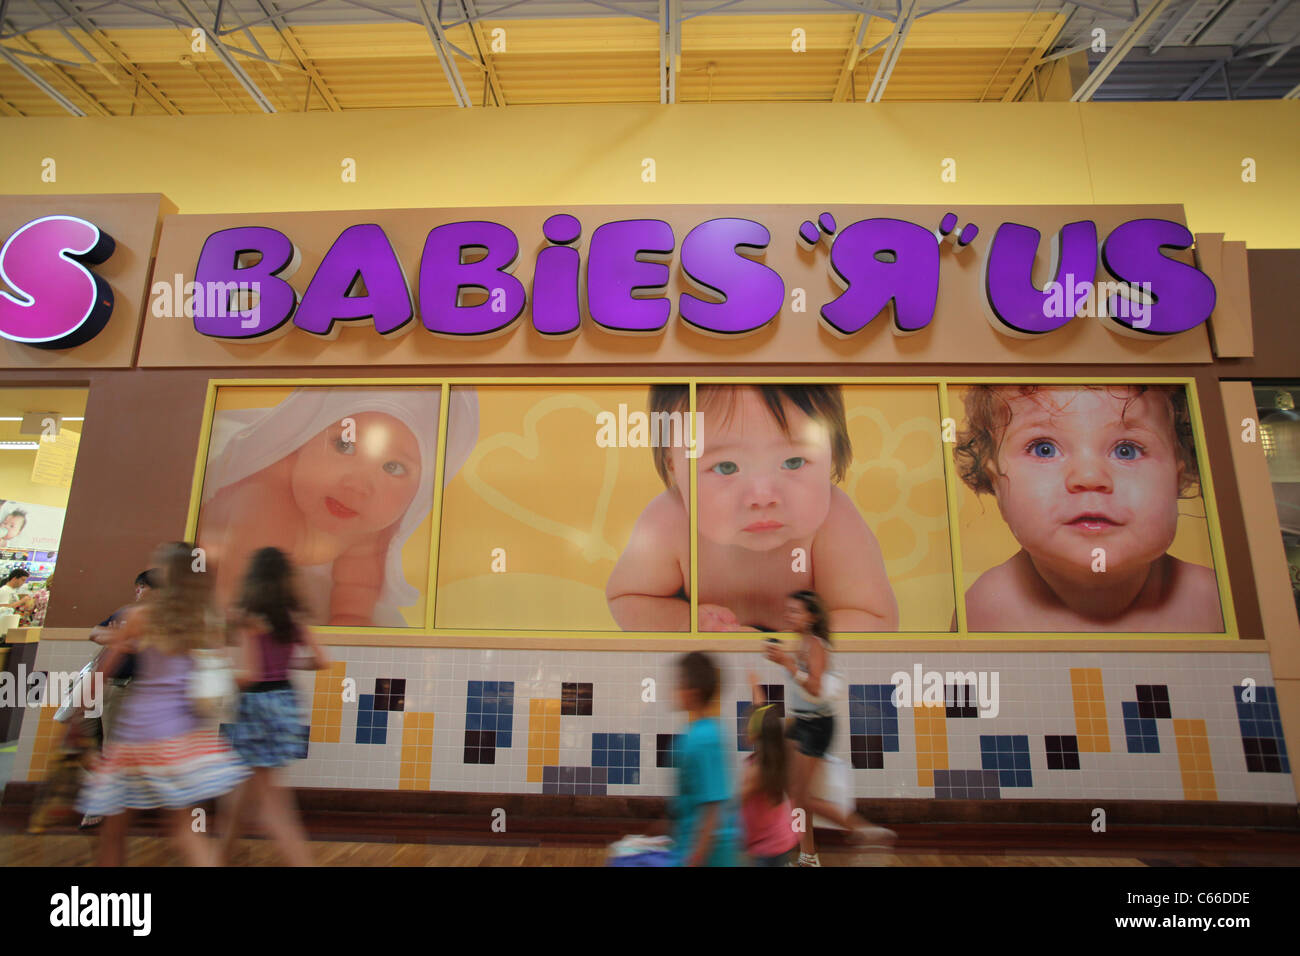 'Babies r us' poster outside a Toys r us store in Vaughan mills mall, Toronto - Stock Image